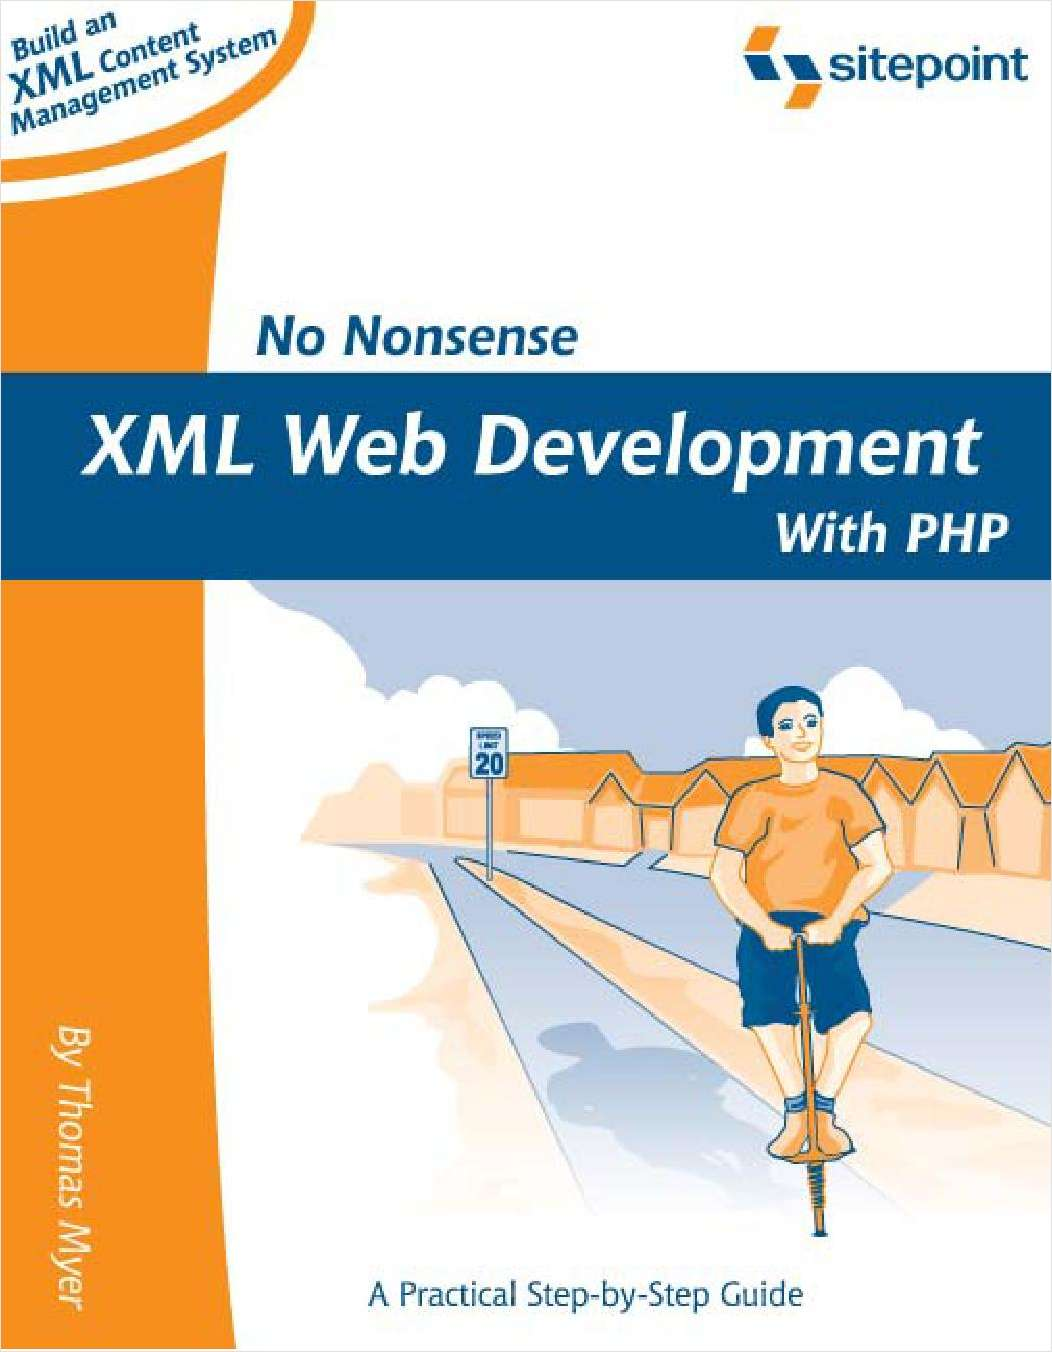 No Nonsense XML Web Development With PHP - Free 146 Page Preview!